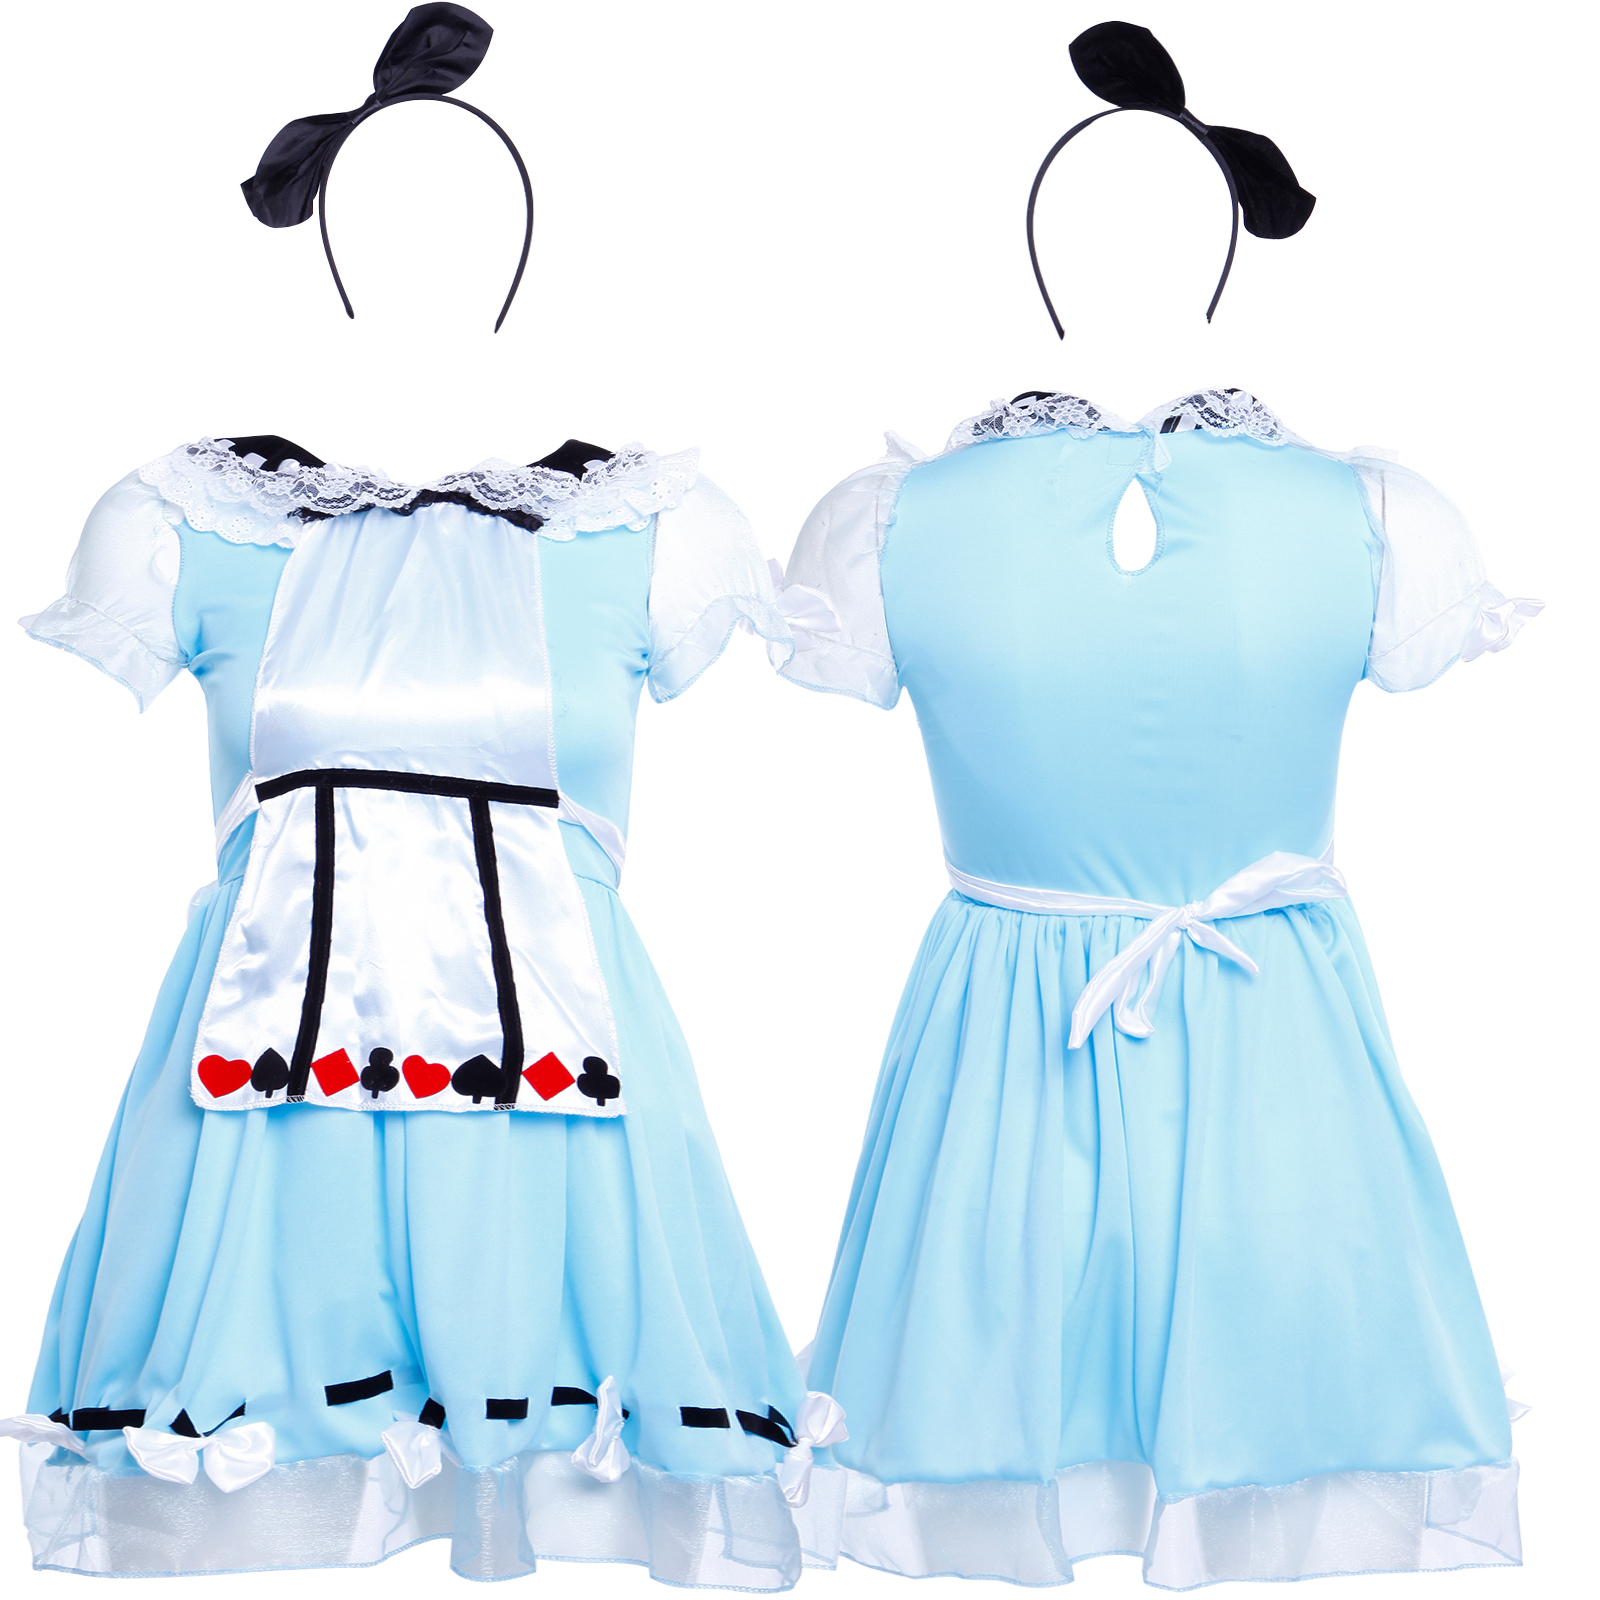 f851e10b1f34 Details about Alice in Wonderland Girl Kid Fancy Dress Maid Lolita Costume  Cosplay Outfits Set